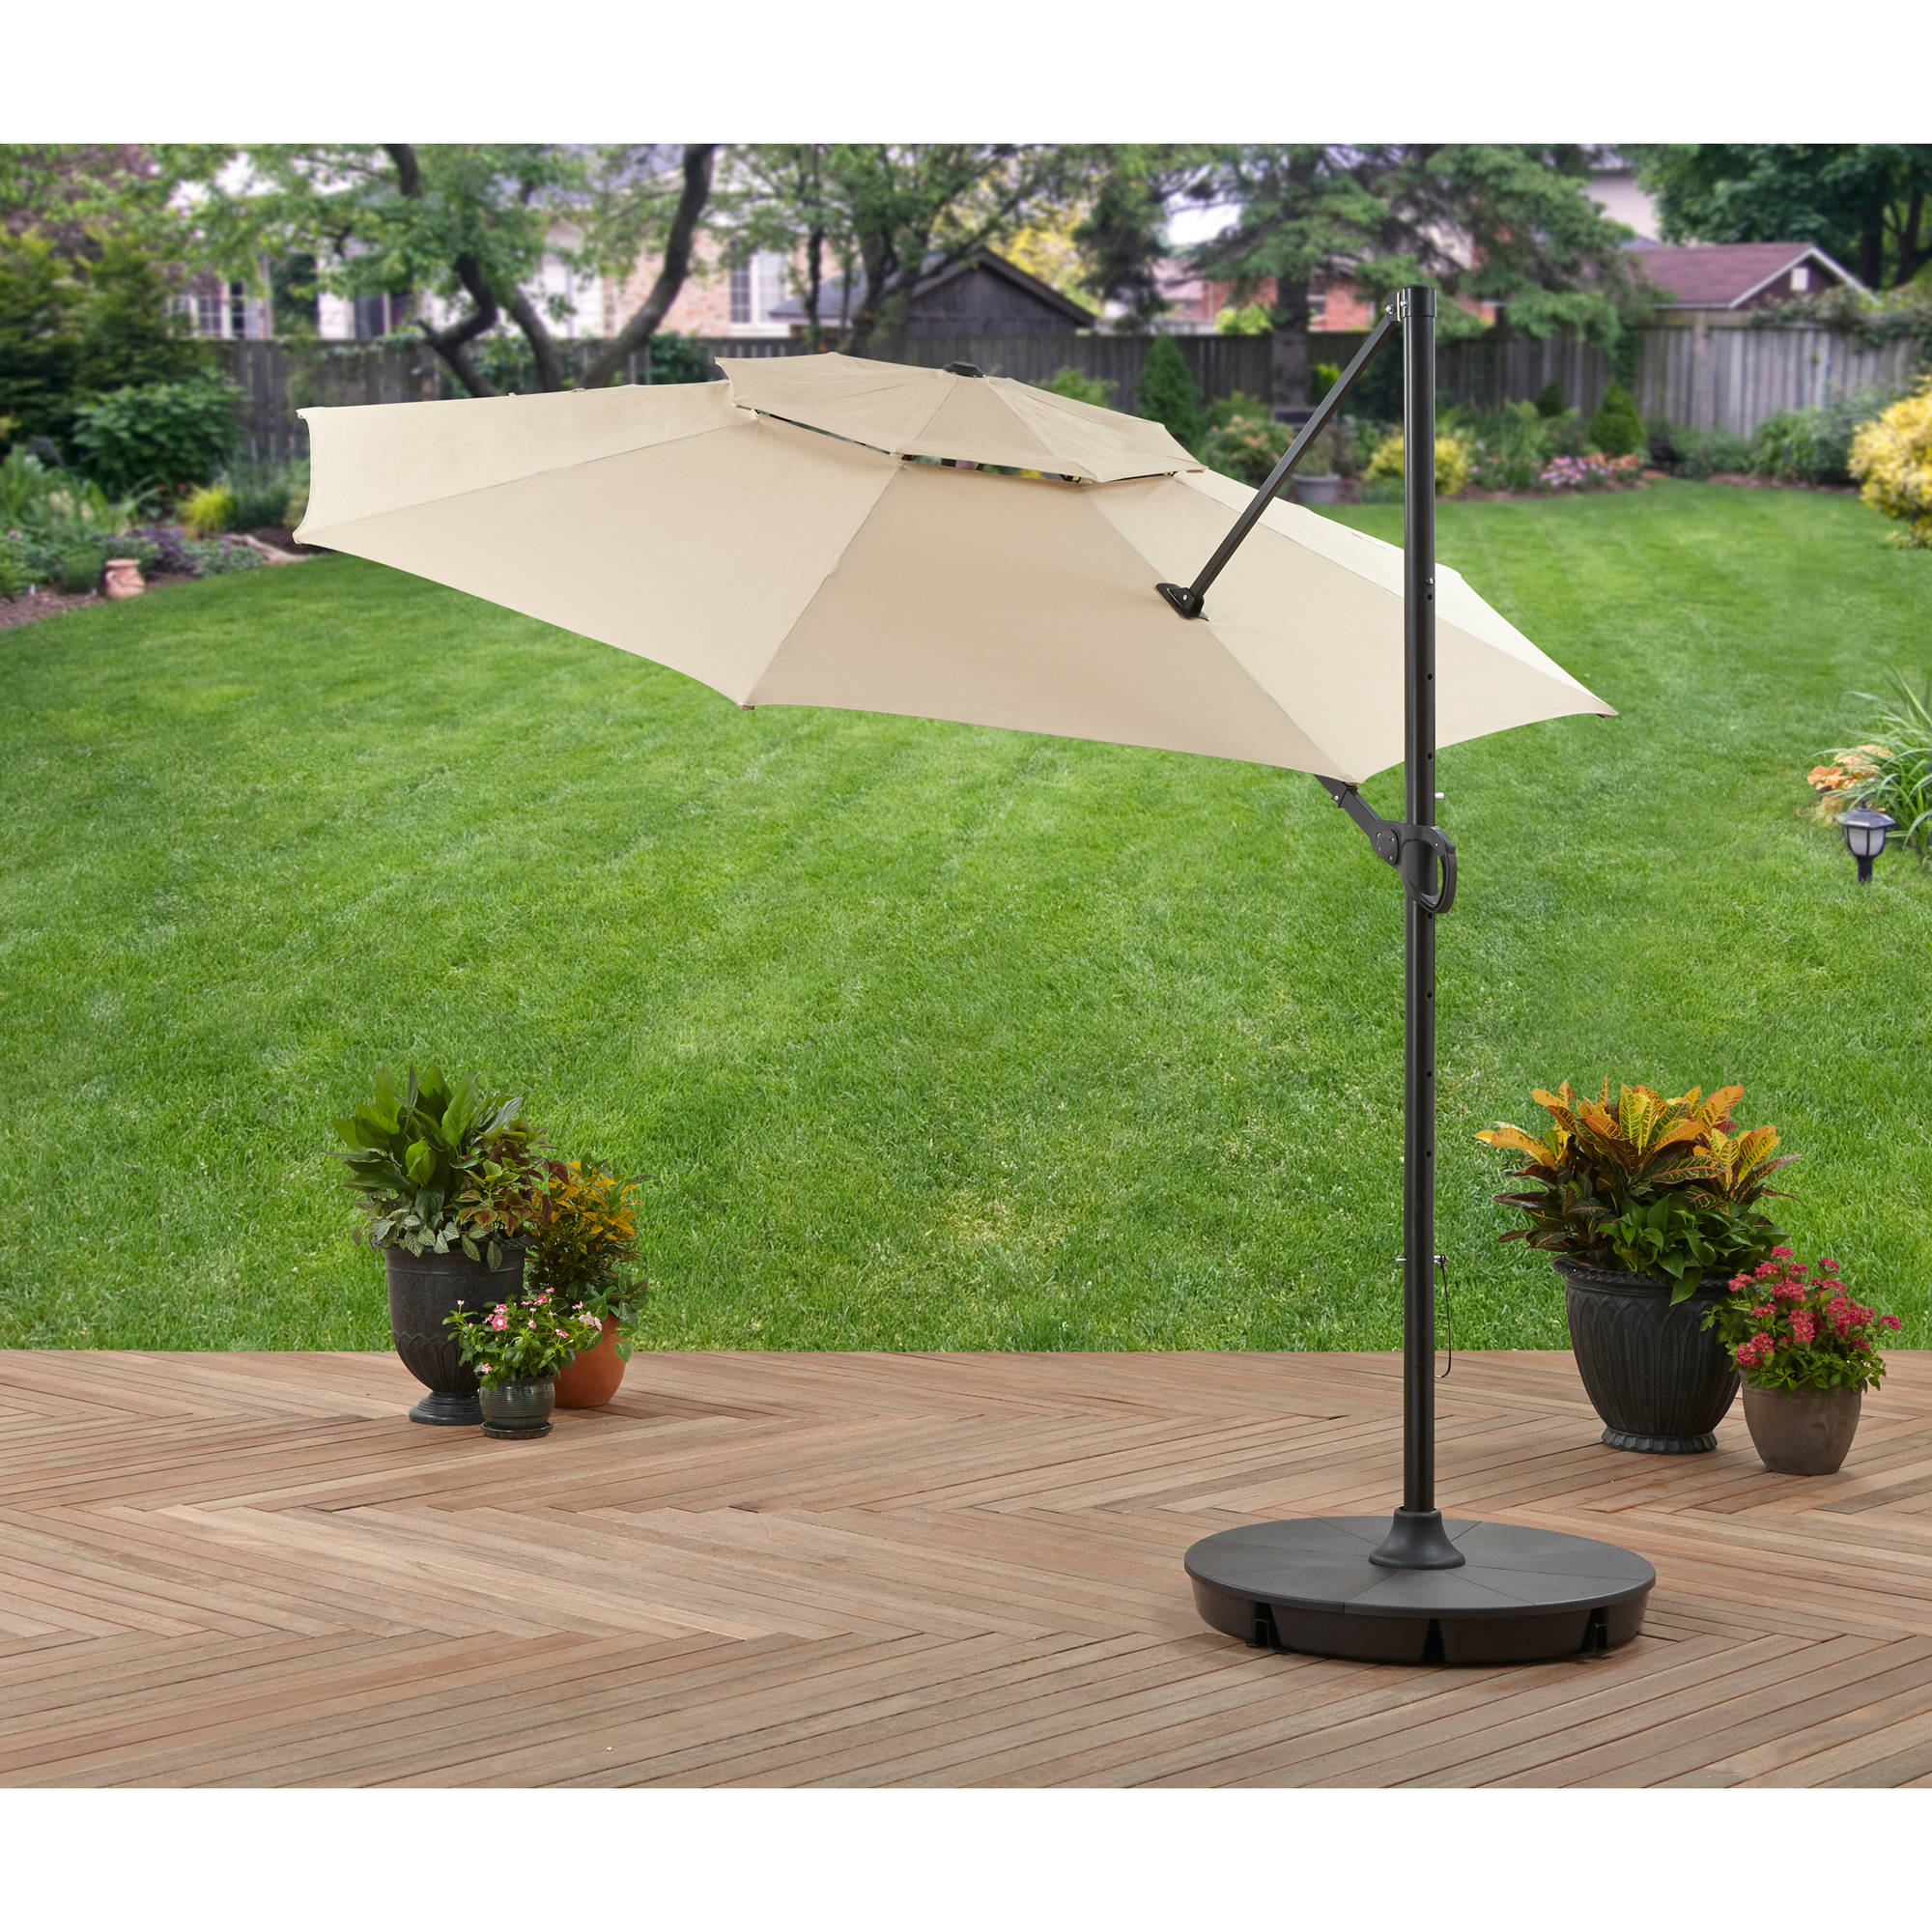 Better Homes And Gardens 11u0027 Offset Umbrella With Base, ...